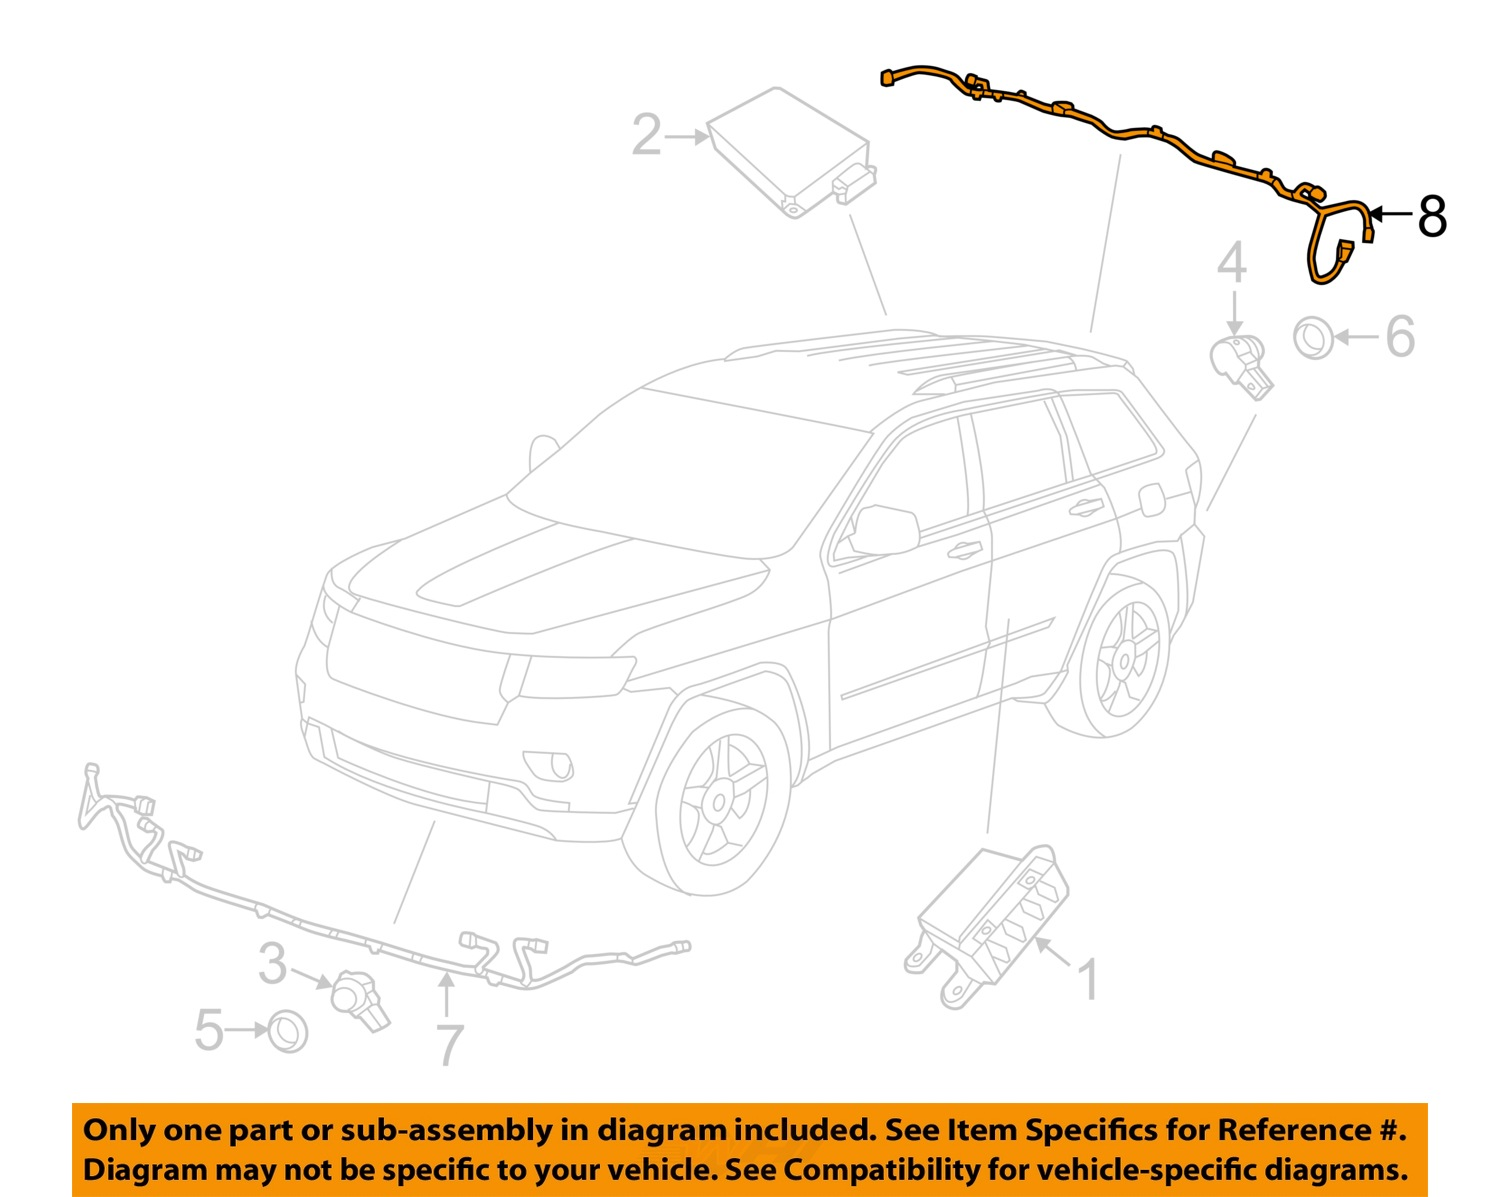 jeep grand cherokee pcm wiring diagram wiring diagram and 1996 jeep grand cherokee laredo wiring diagram source 1995 jeep grand cherokee sporadically s while driving